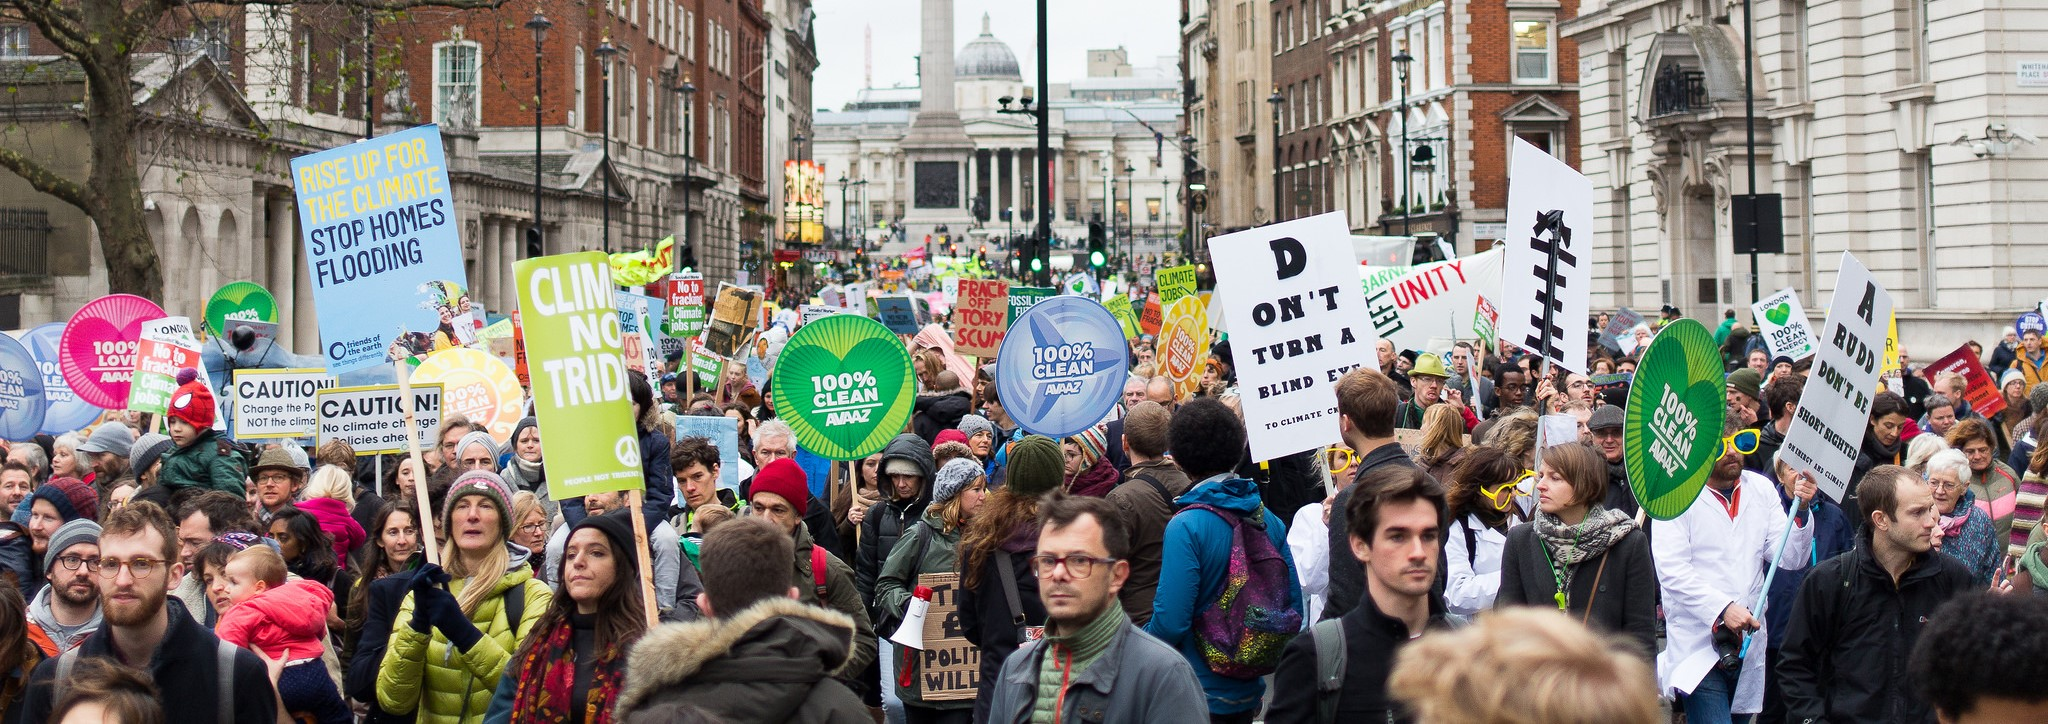 A rally in London ahead of Paris COP 23 (Photo: Flickr/Matthew Kirby)